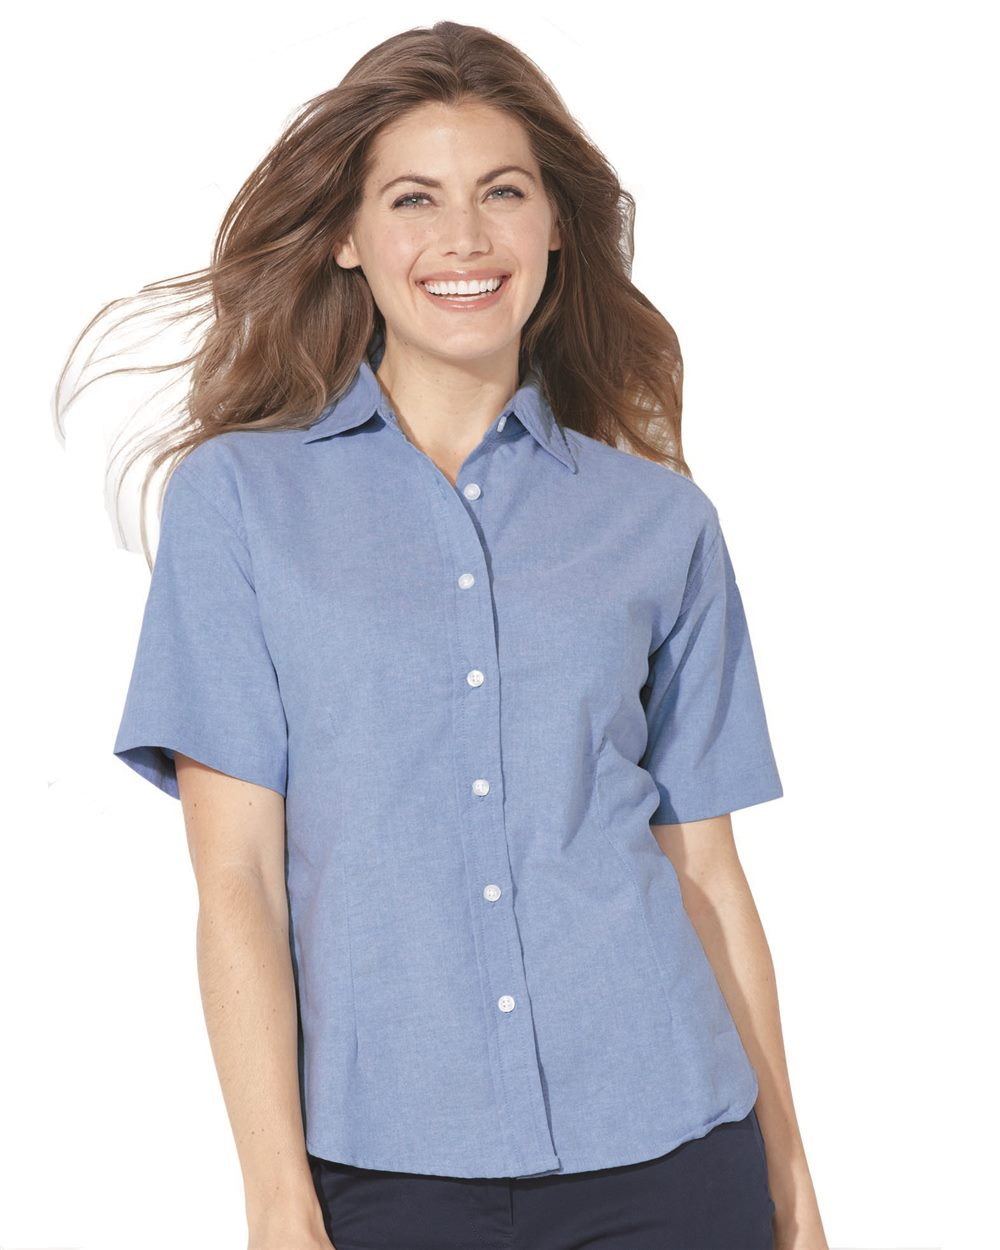 FeatherLite 5231 Ladies' Short Sleeve Oxford Shirt